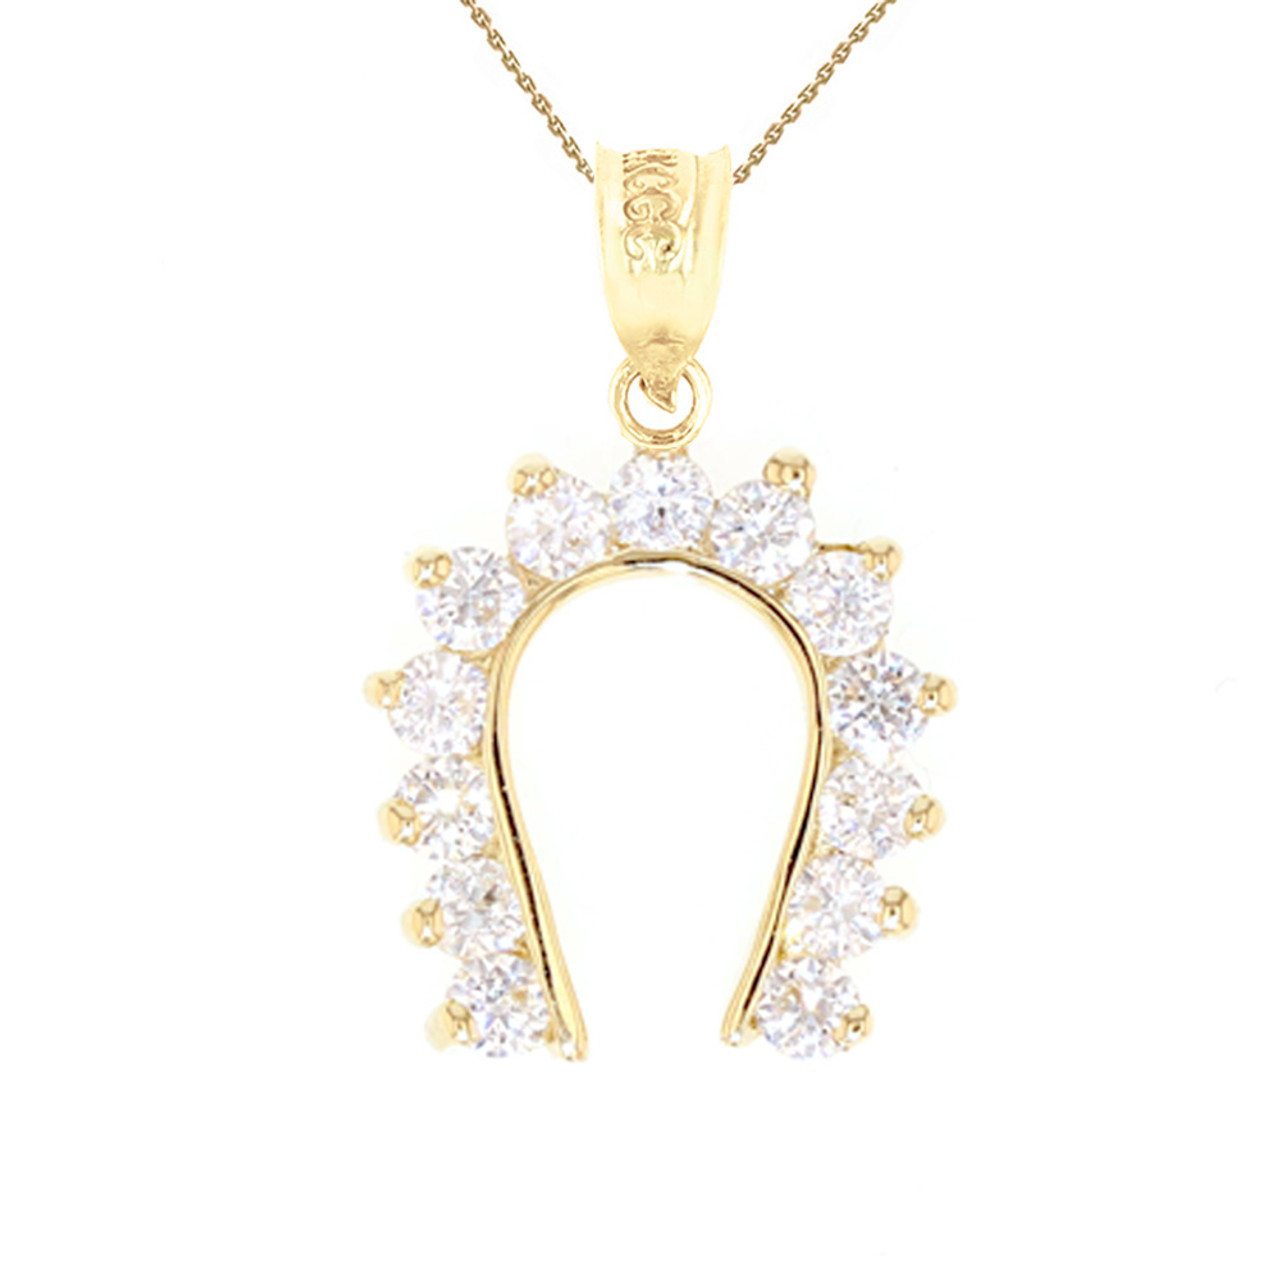 Yellow gold good luck horseshoe pendant necklace aloadofball Image collections